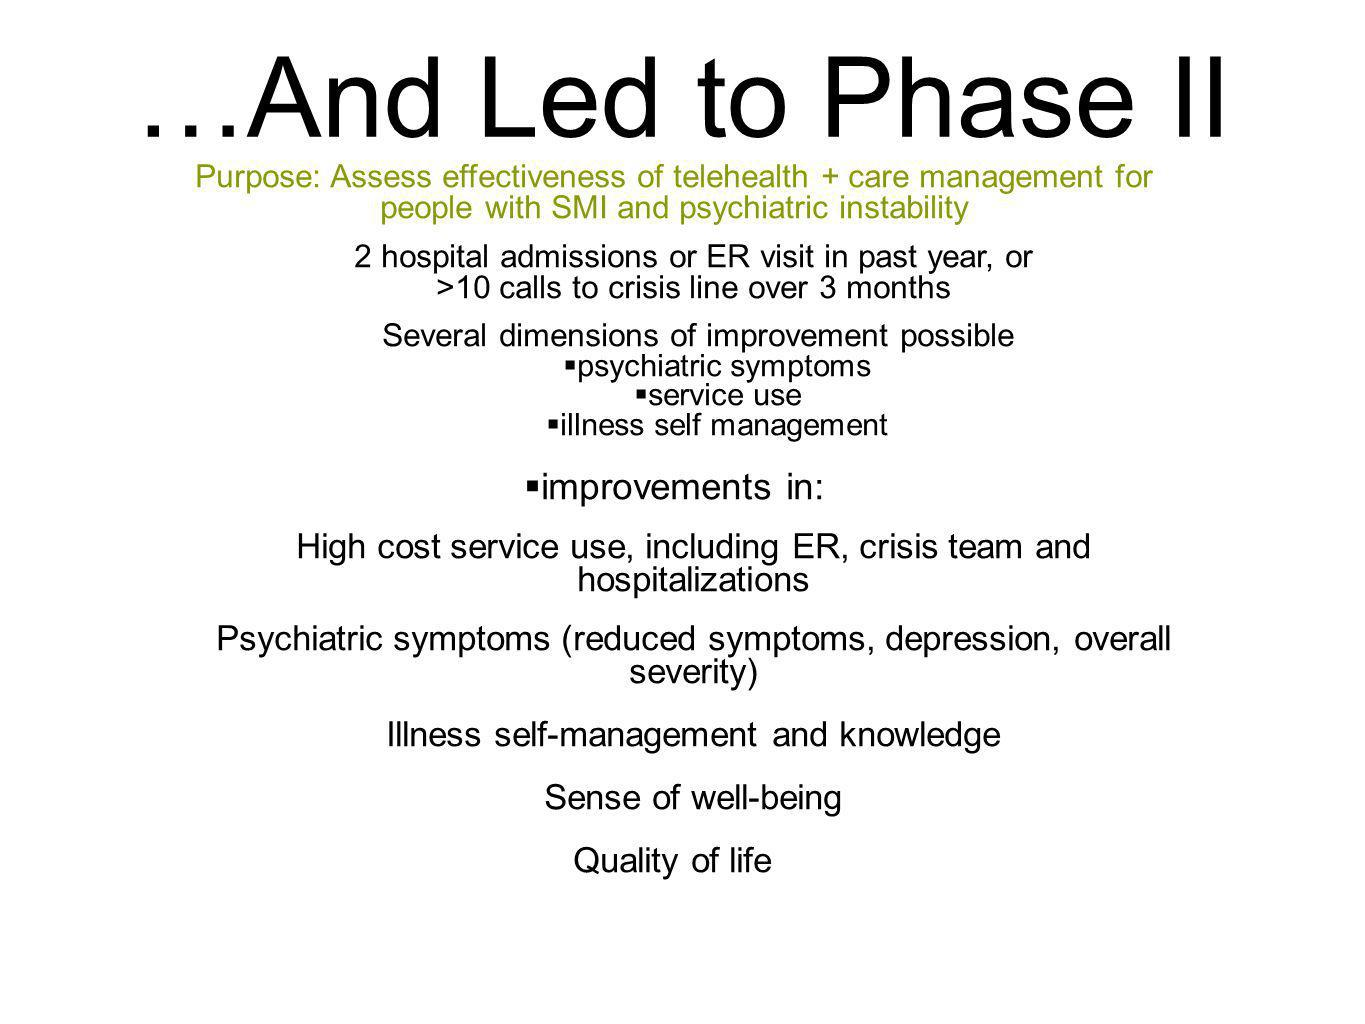 …And Led to Phase II Purpose: Assess effectiveness of telehealth + care management for people with SMI and psychiatric instability 2 hospital admissio